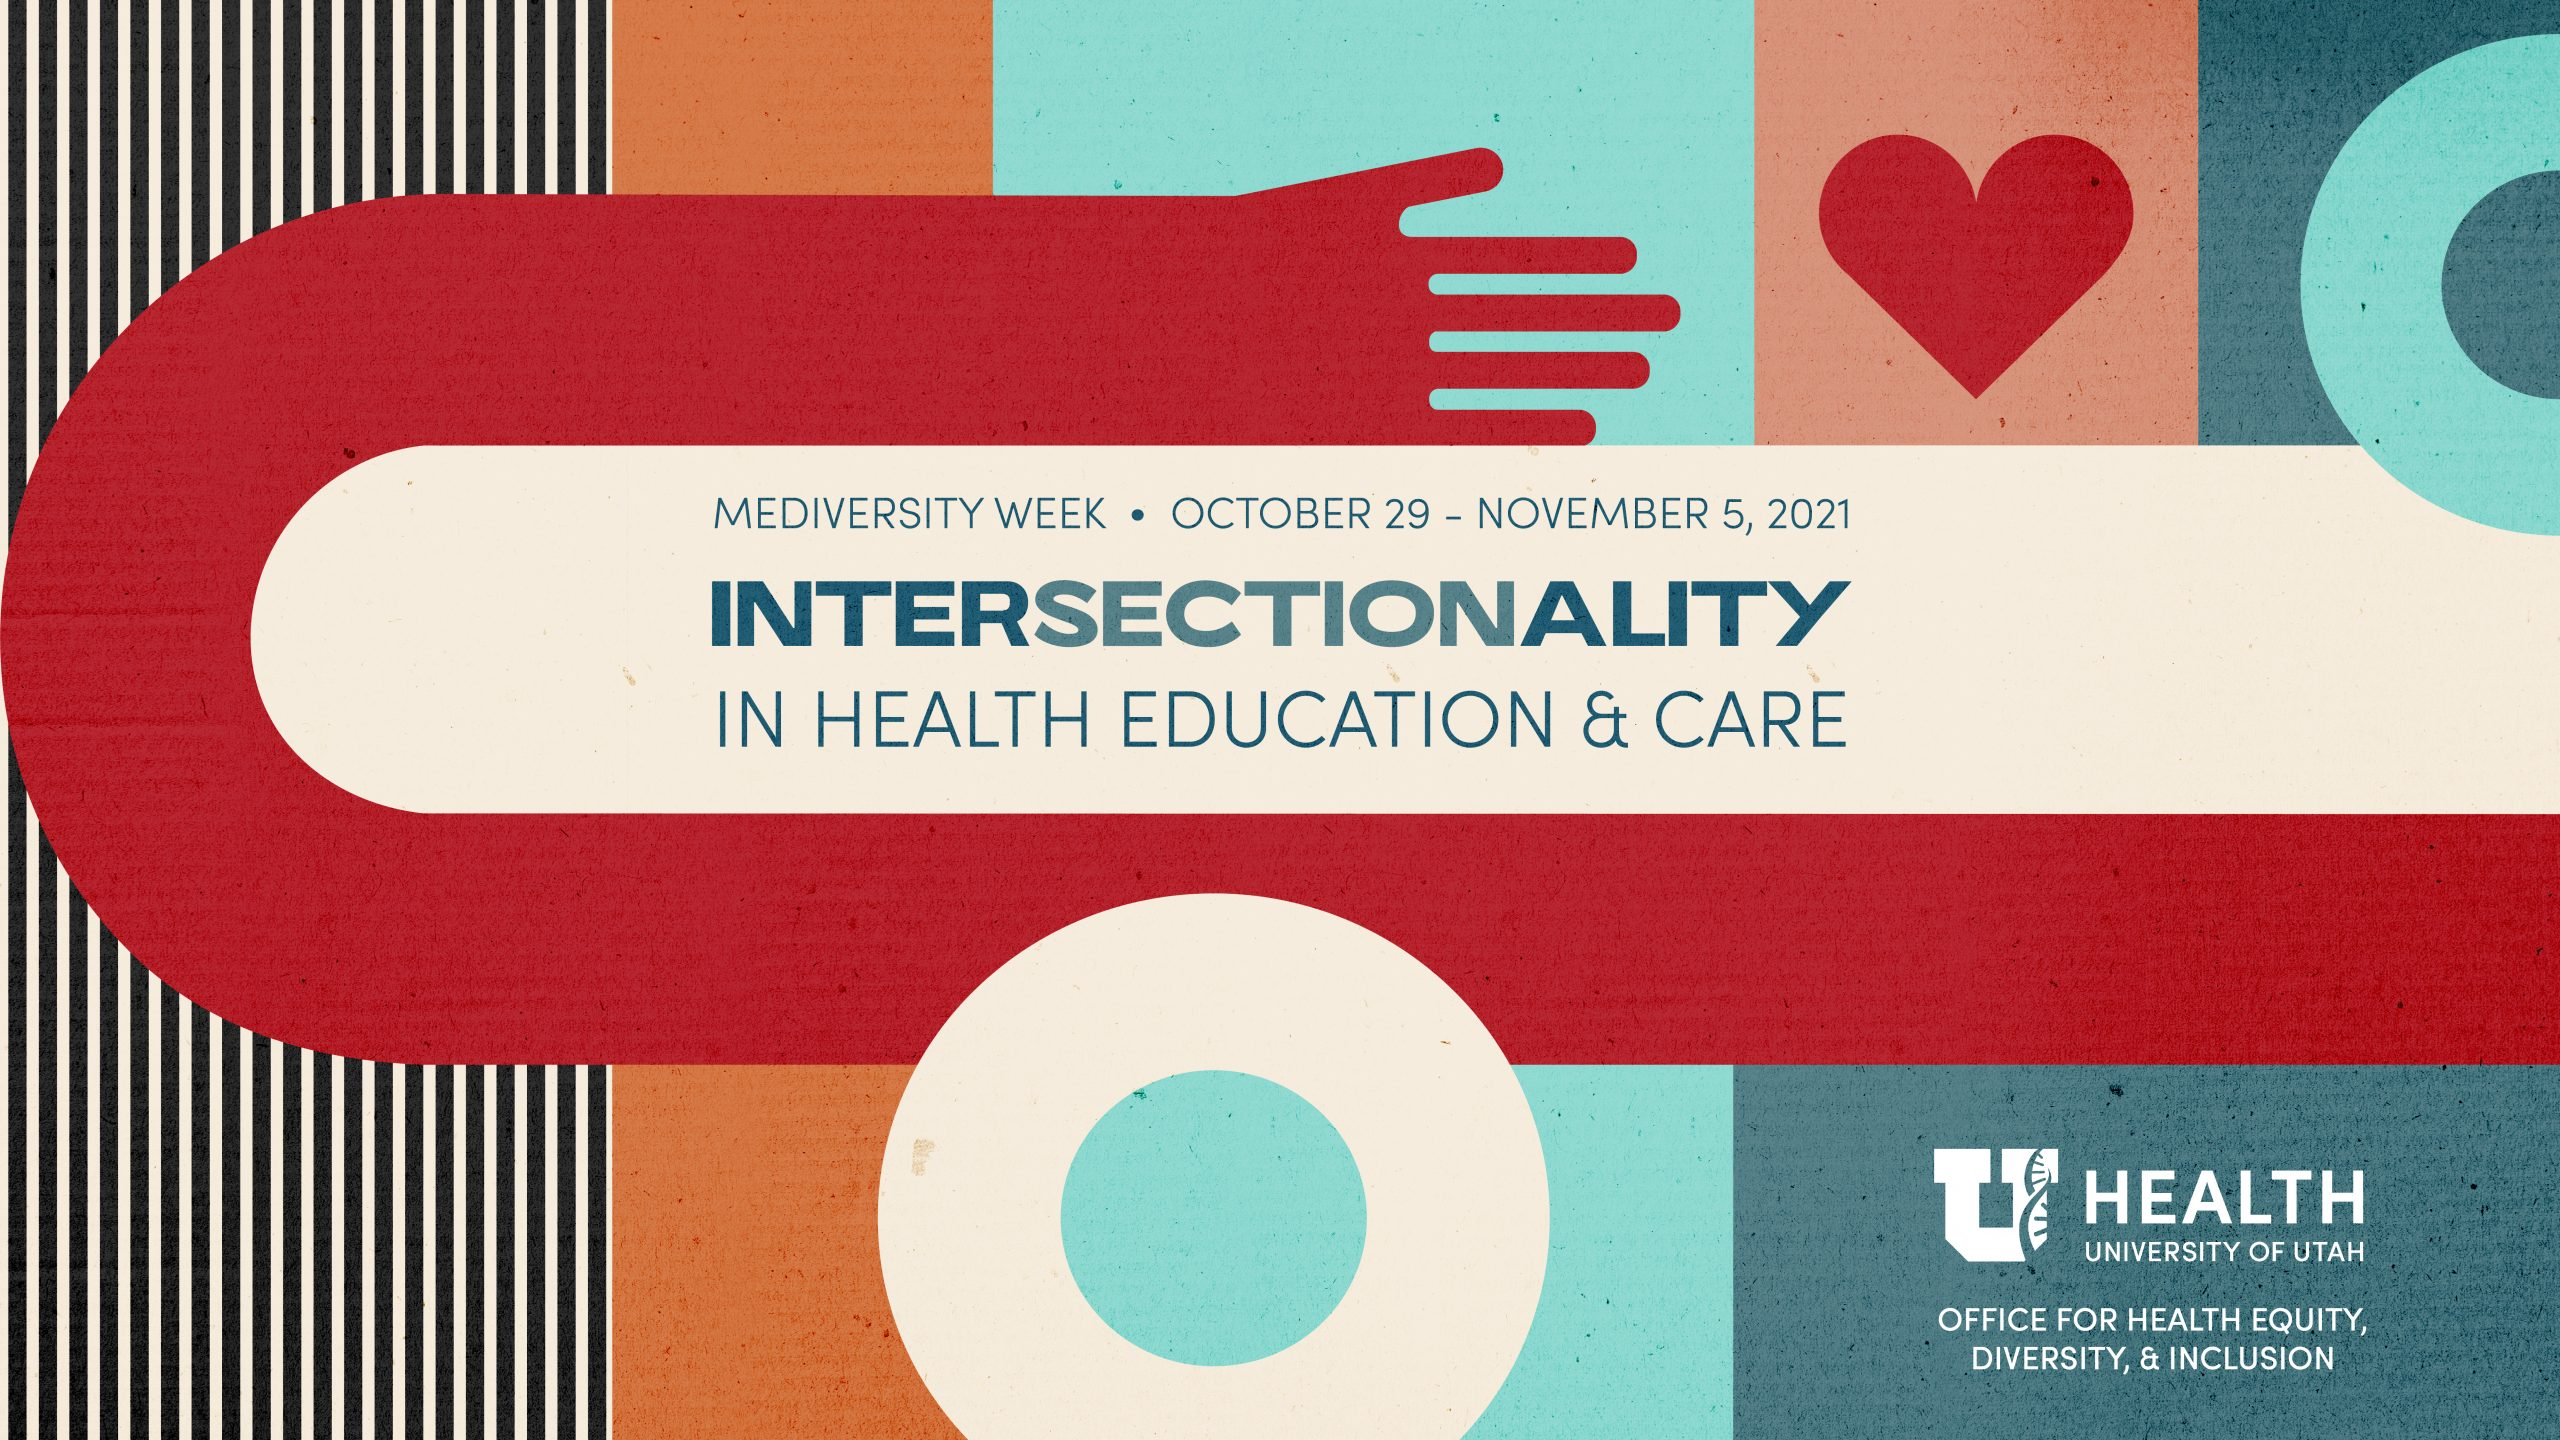 MEDiversity Week, Intersectionality in Health Education and Care